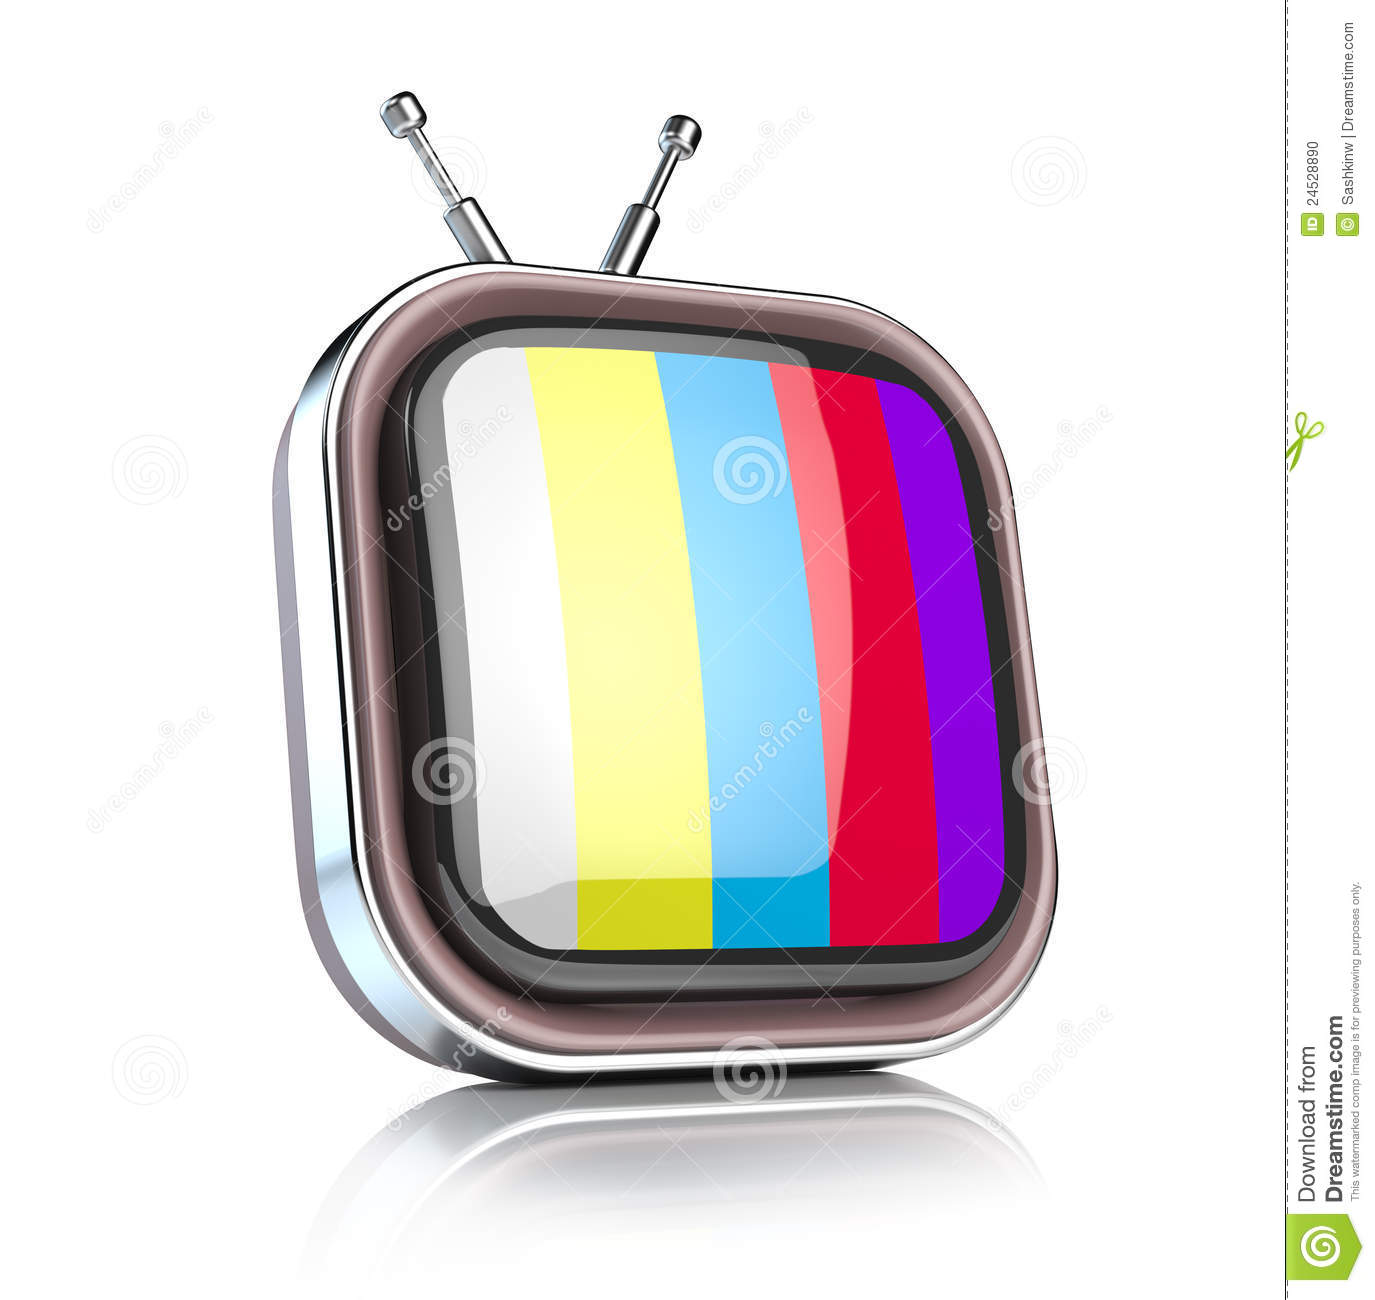 Retro Tv Icon Stock Photo Image 24528890